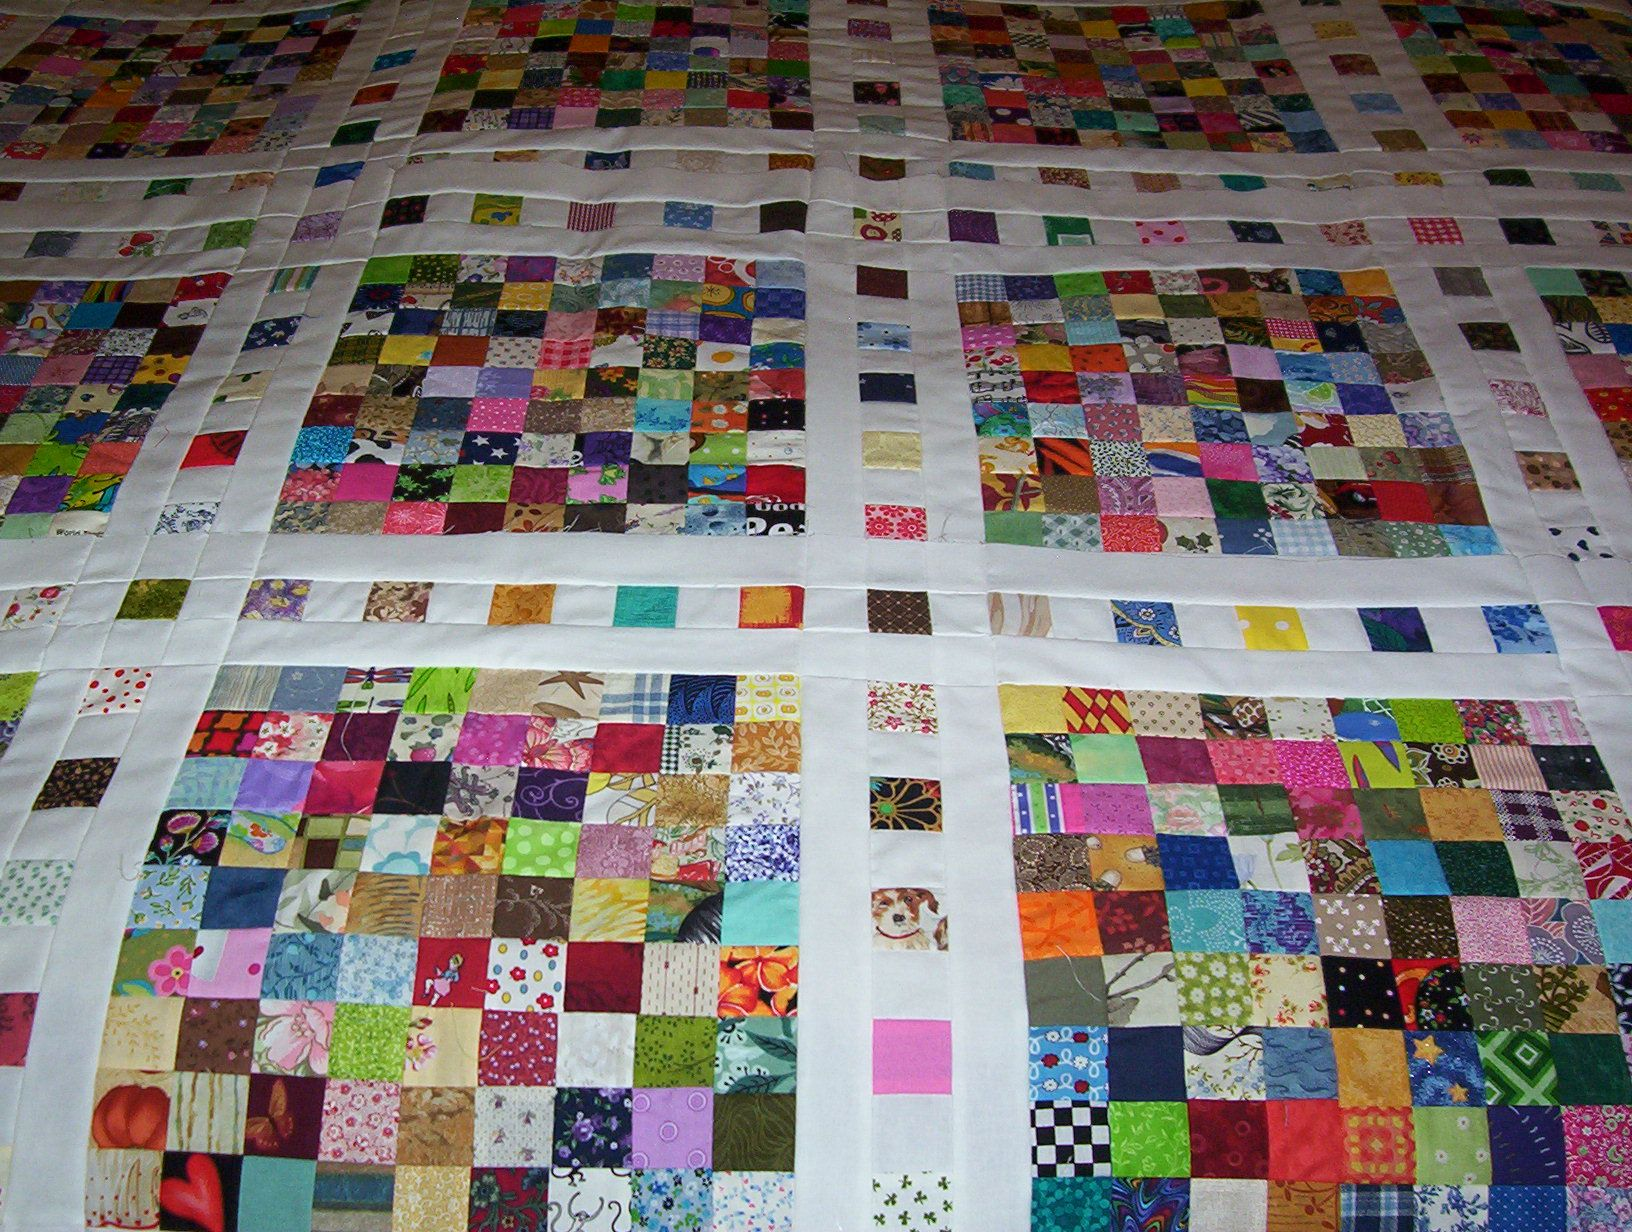 Postage Stamp Quilt Click To View Large Image